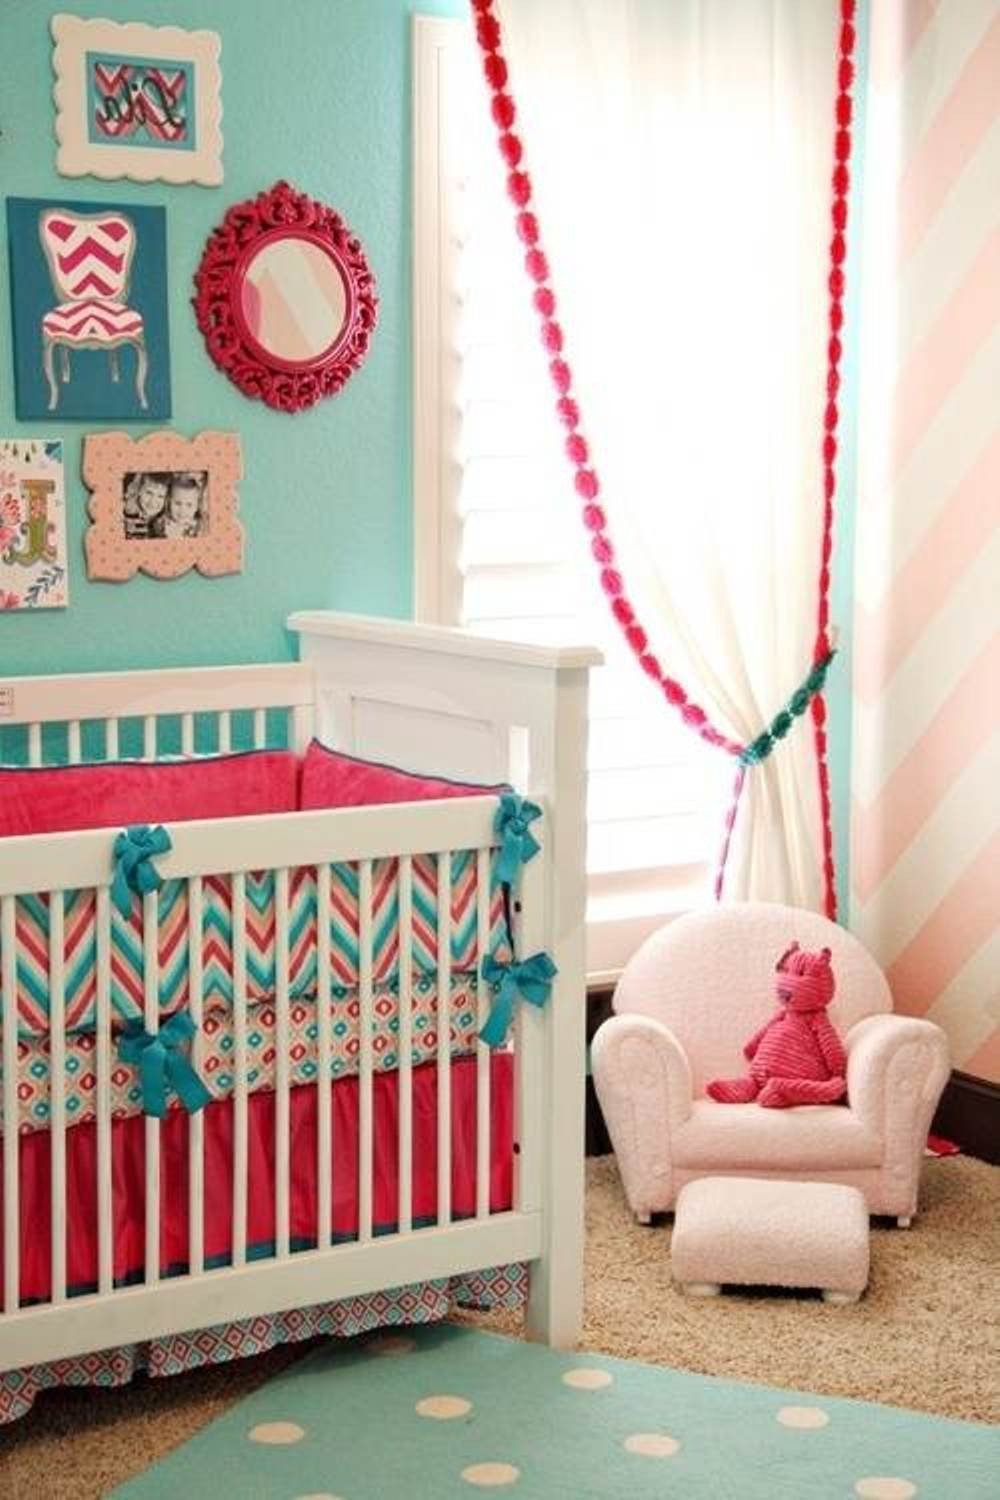 Room Decor for Baby Girl New 25 Baby Bedroom Design Ideas for Your Cutie Pie